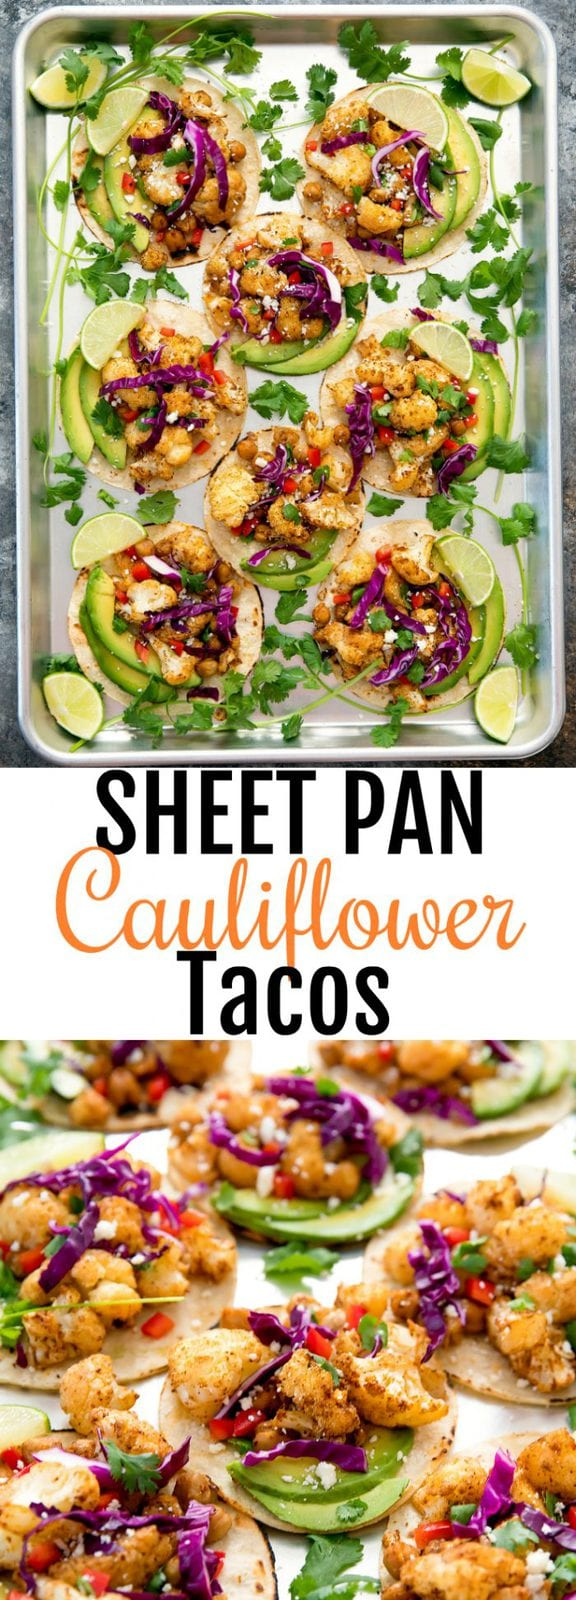 Sheet Pan Cauliflower Chickpea Tacos